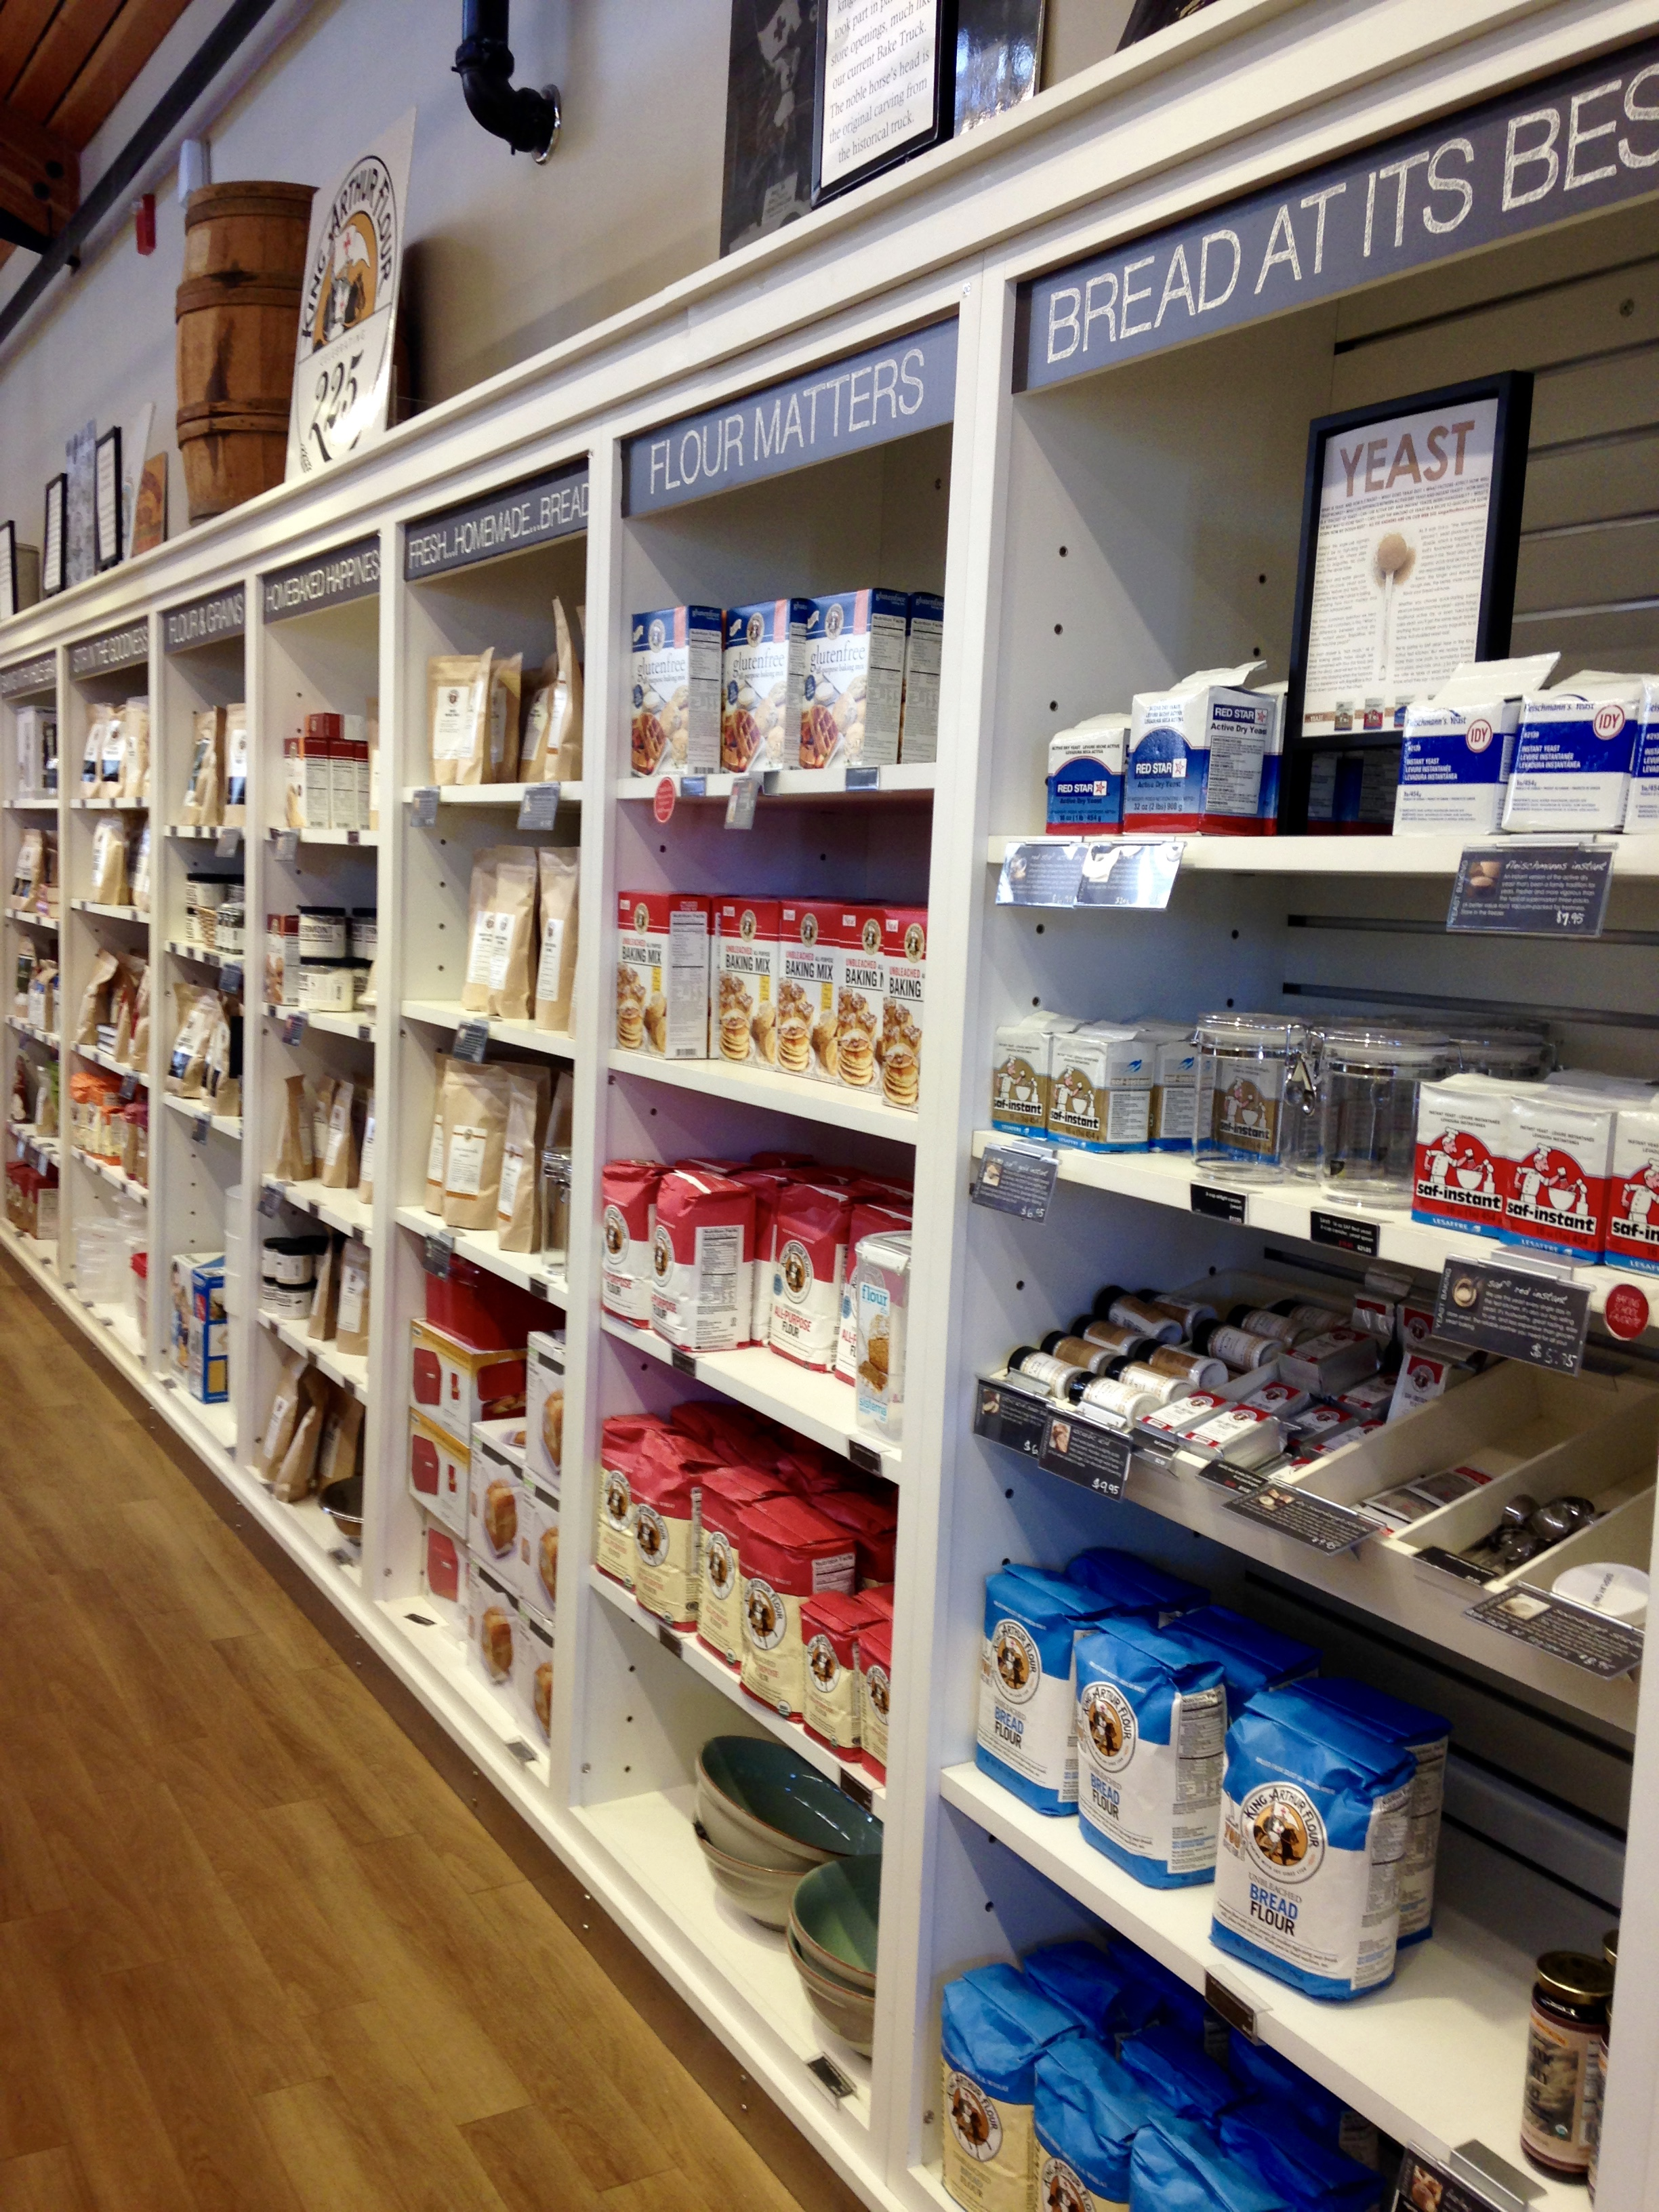 the store has everything from appliances to extracts and all gadgets and ingredients in between